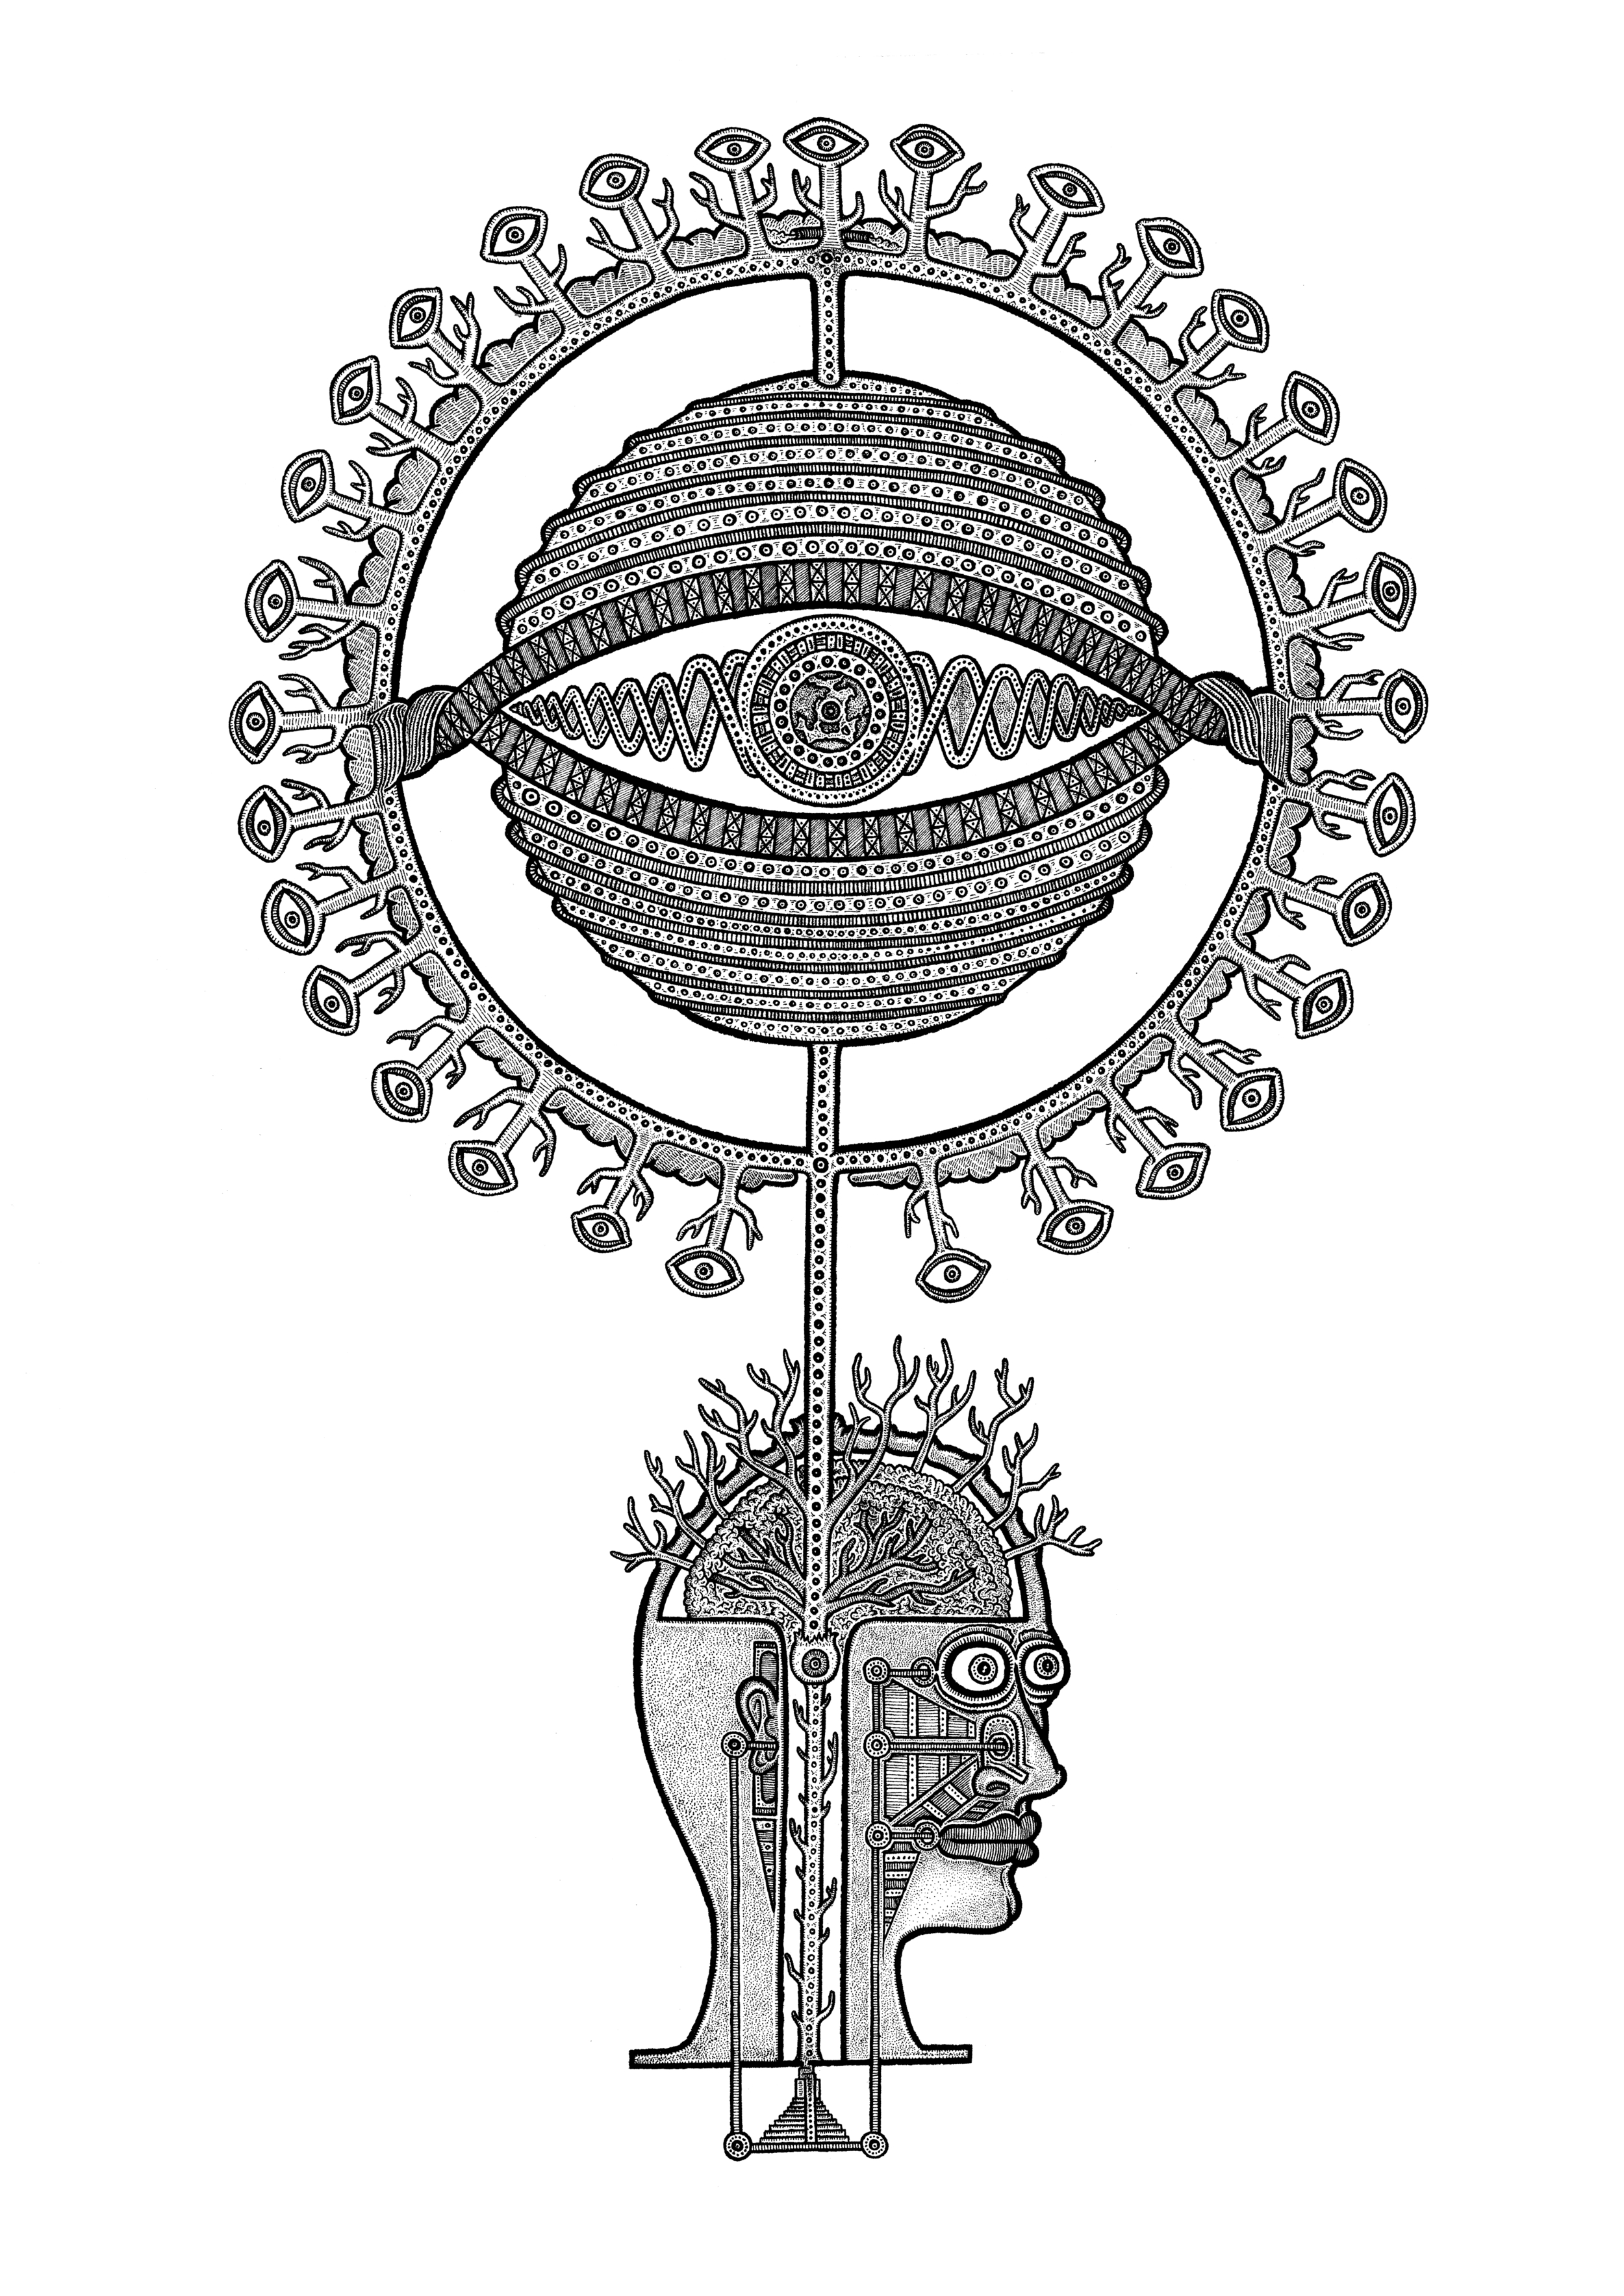 'THE PINEAL PARADISE'